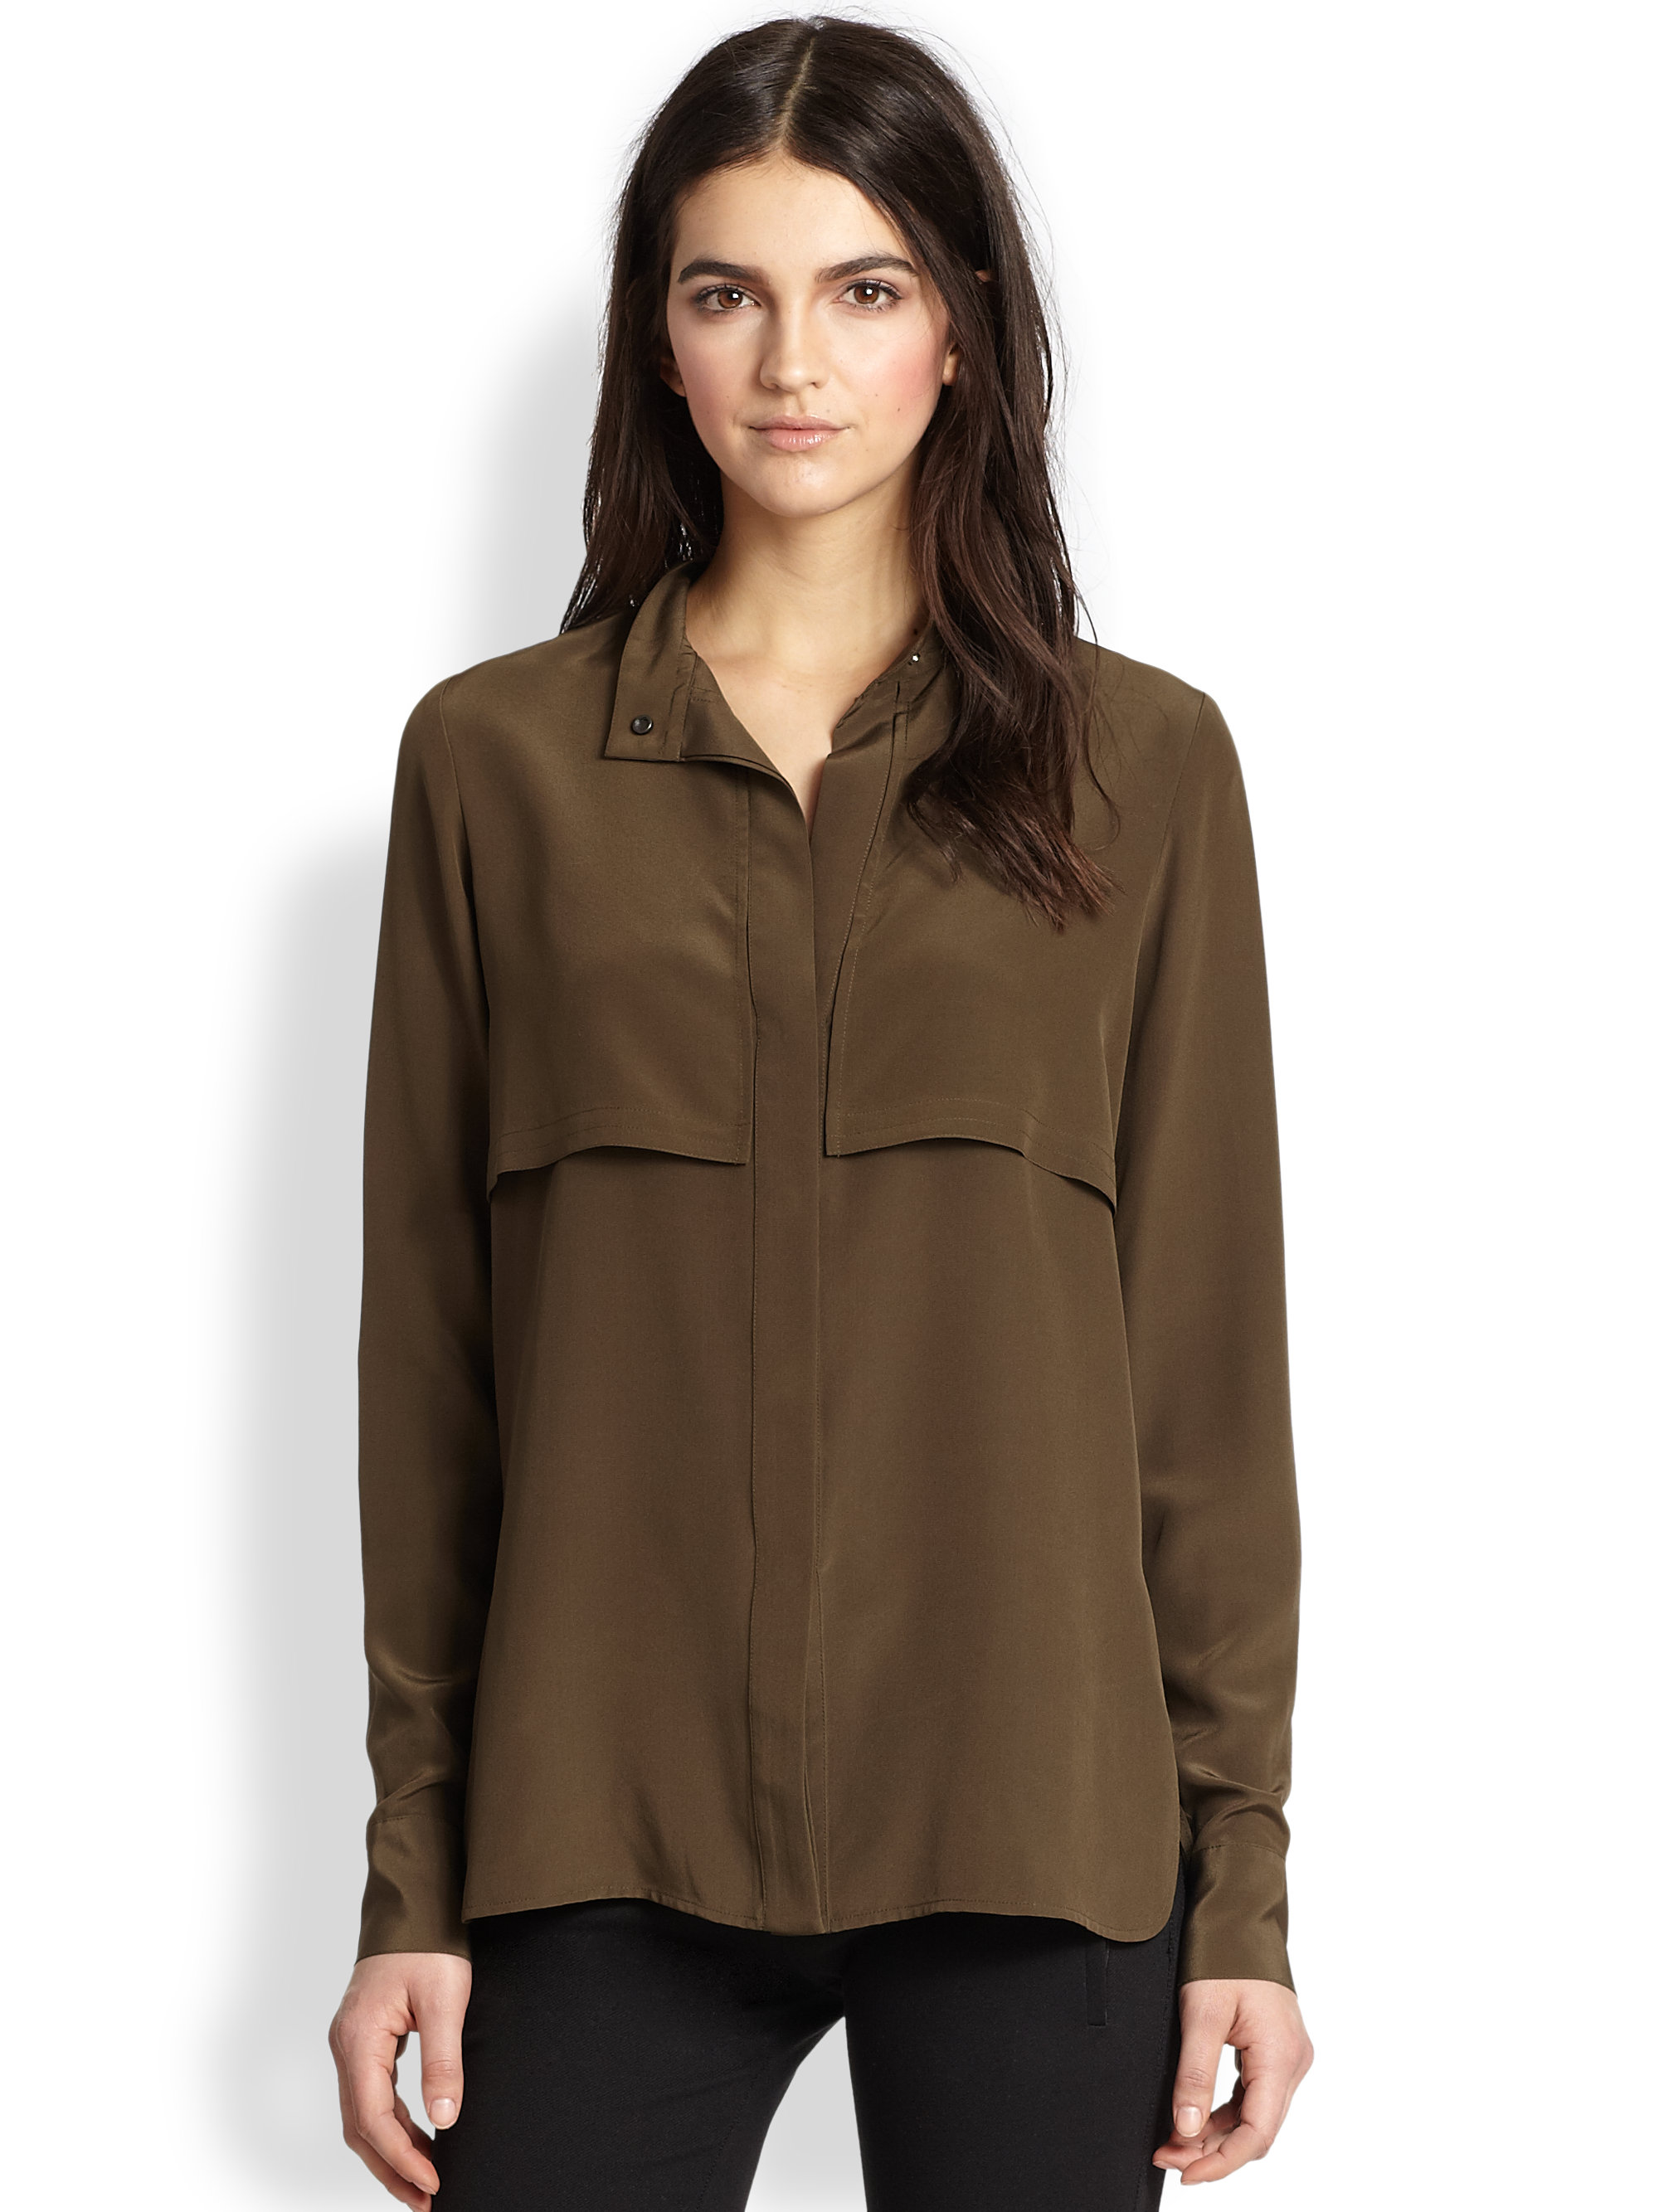 Military Blouse Shirt 73